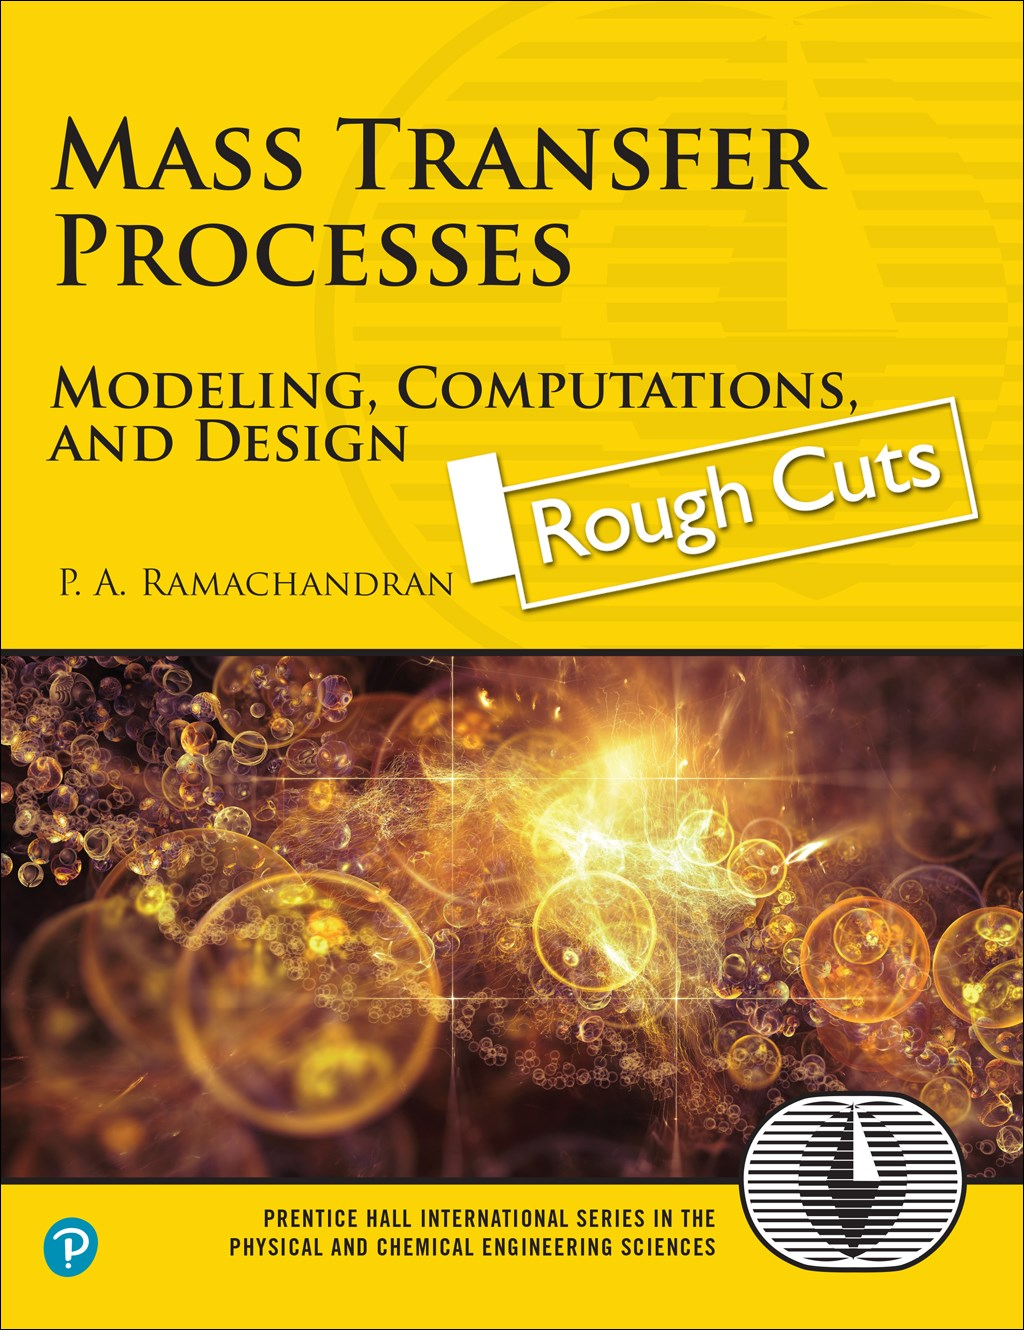 Mass Transfer Processes: Modeling, Computations, and Design, Rough Cuts